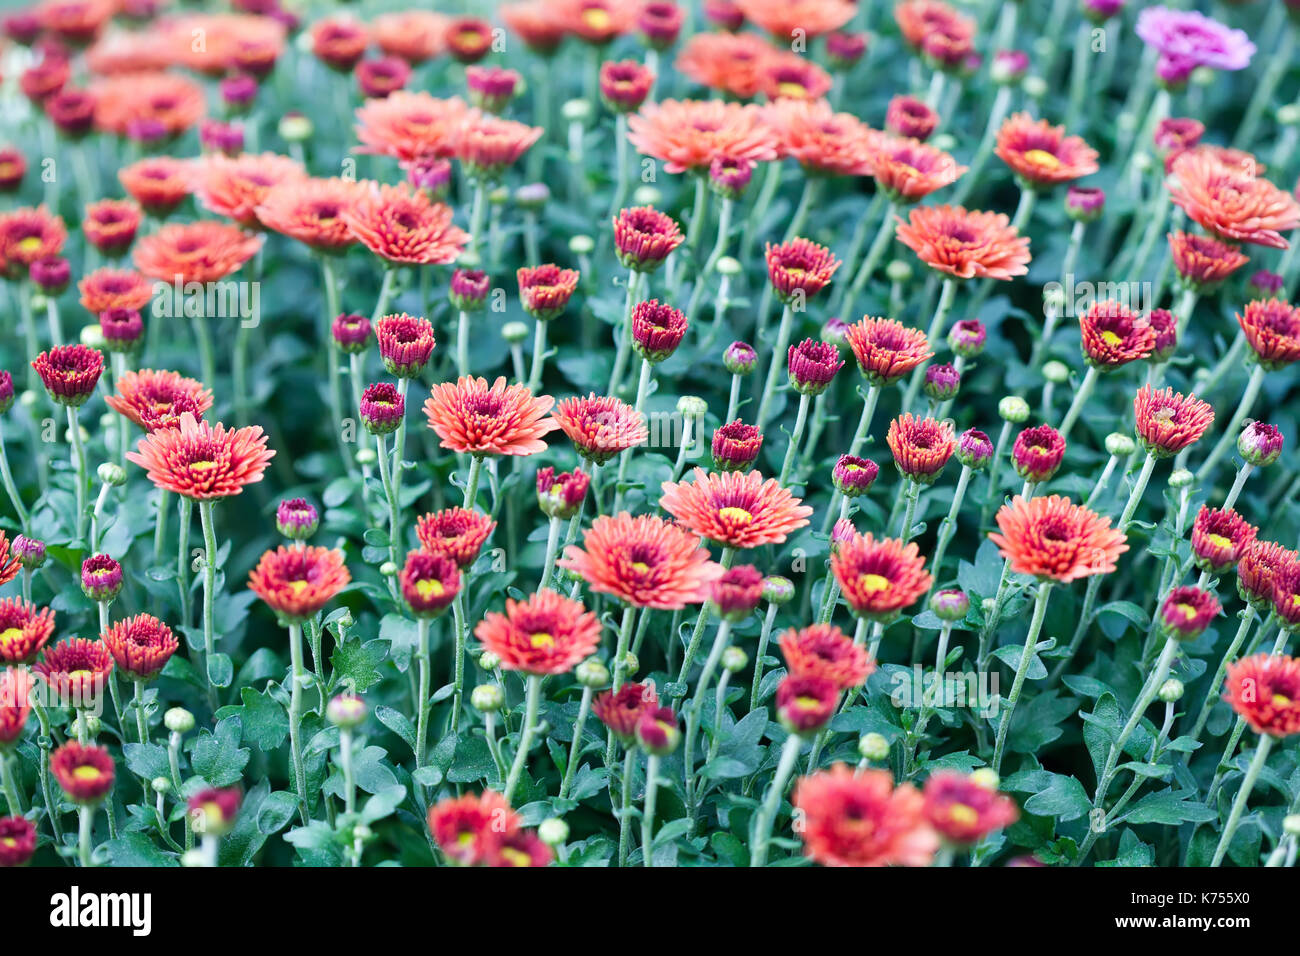 Red chrysanthemum flowers field background. Floral still life with many colorful mums. Selective focus photo - Stock Image